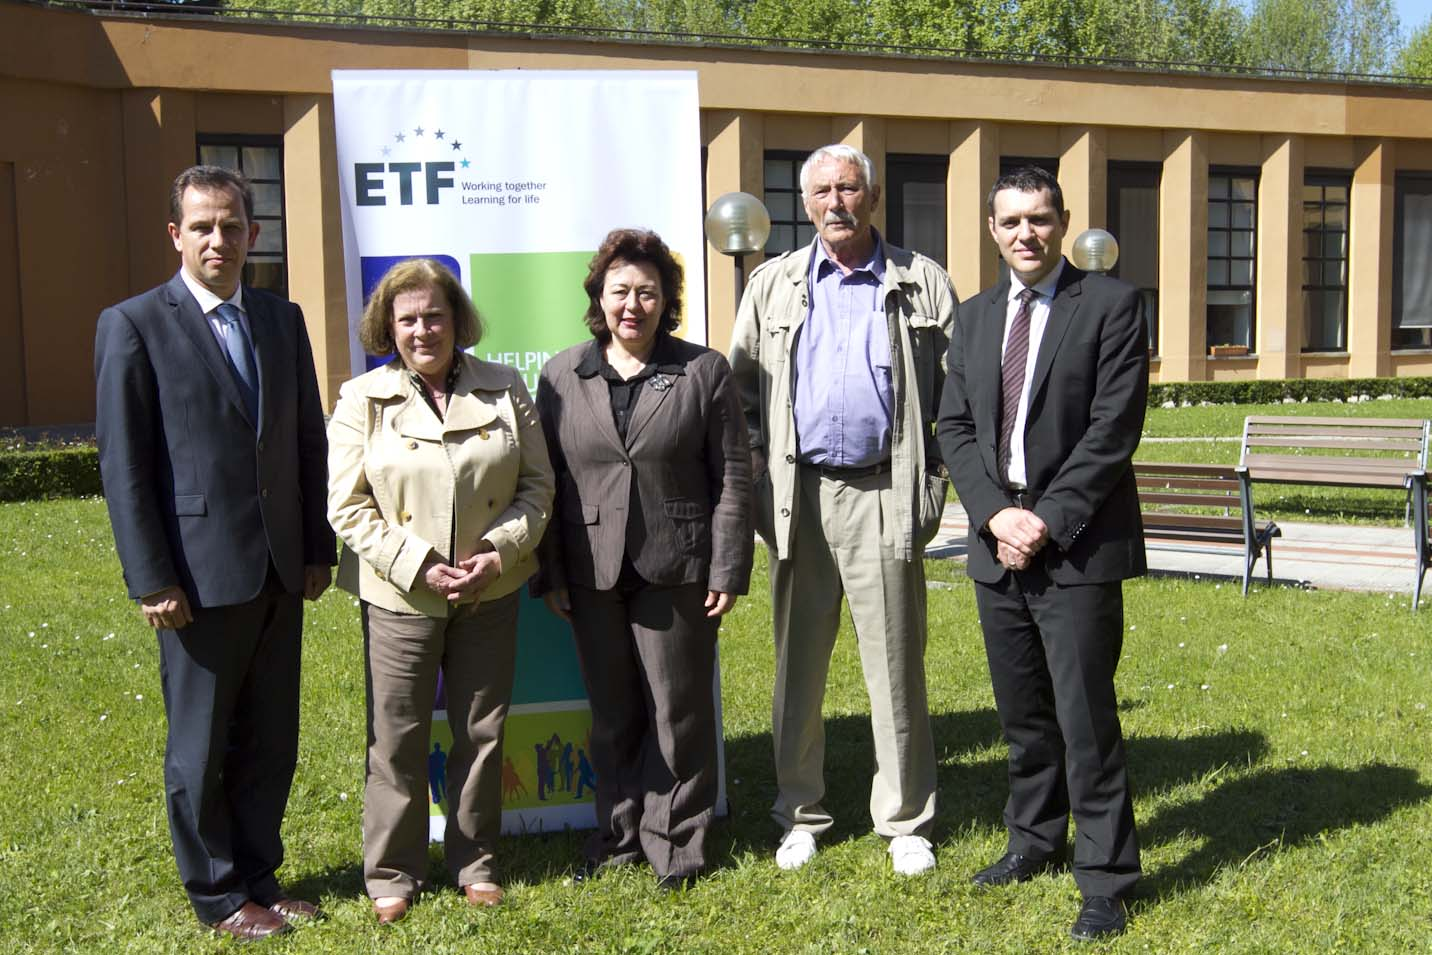 Members of the European Parliament (MEPs) with ETF director and her deputy during the MEPs' visit on 3-4 May 2012